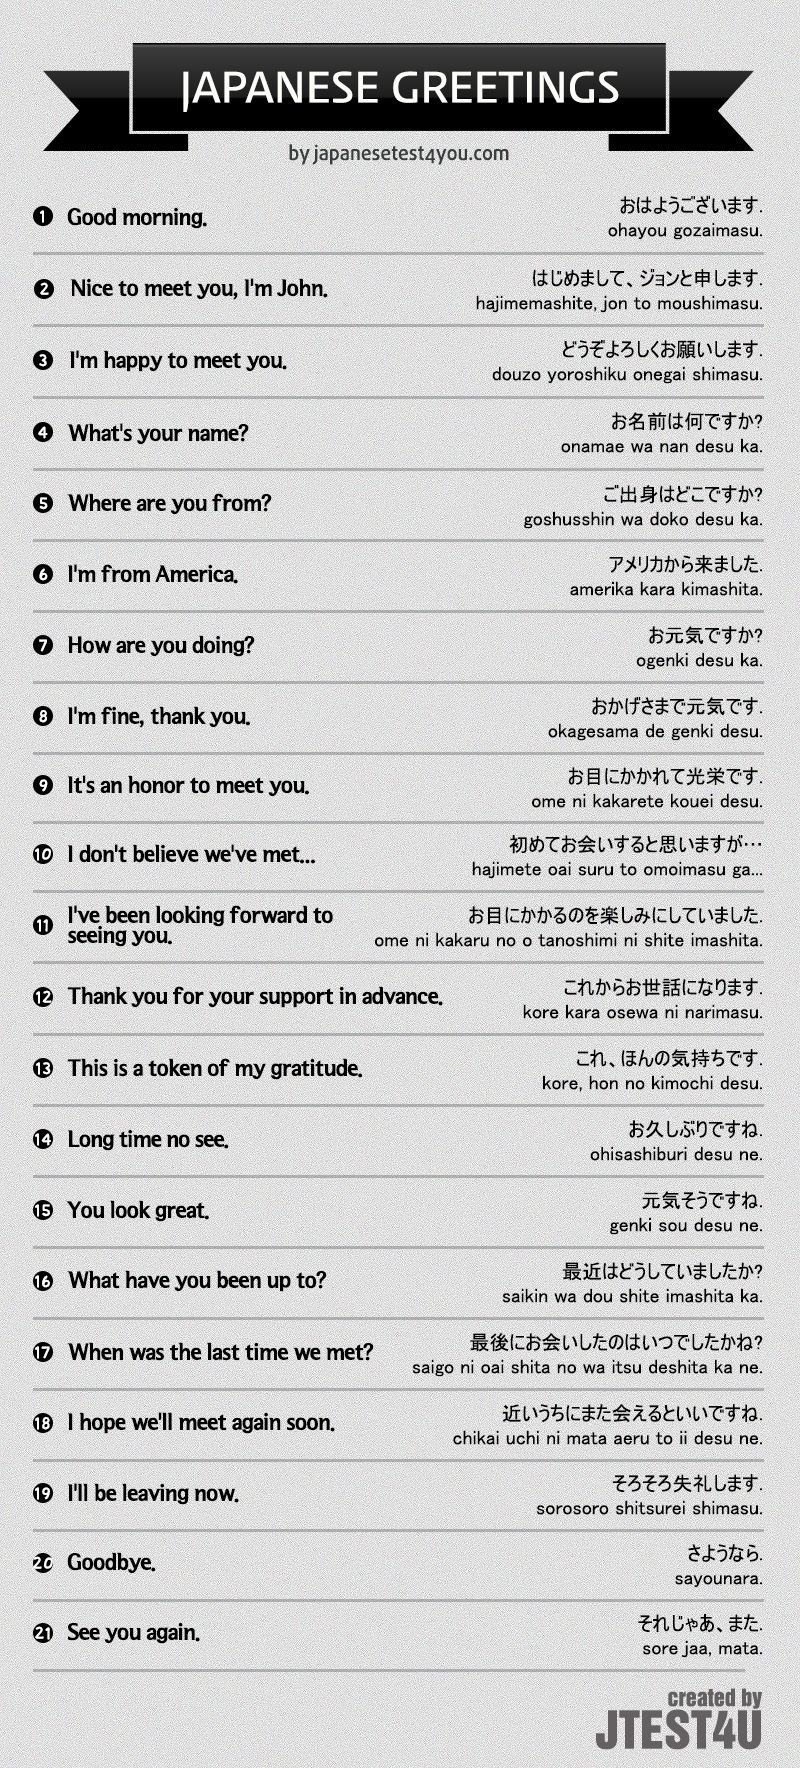 Pin by maria beauchemin on japan pinterest infographic japanese greetings in japanese keep in your journal all the movies you have watched you could also add ratings if you want to design page designed two kinds of m4hsunfo